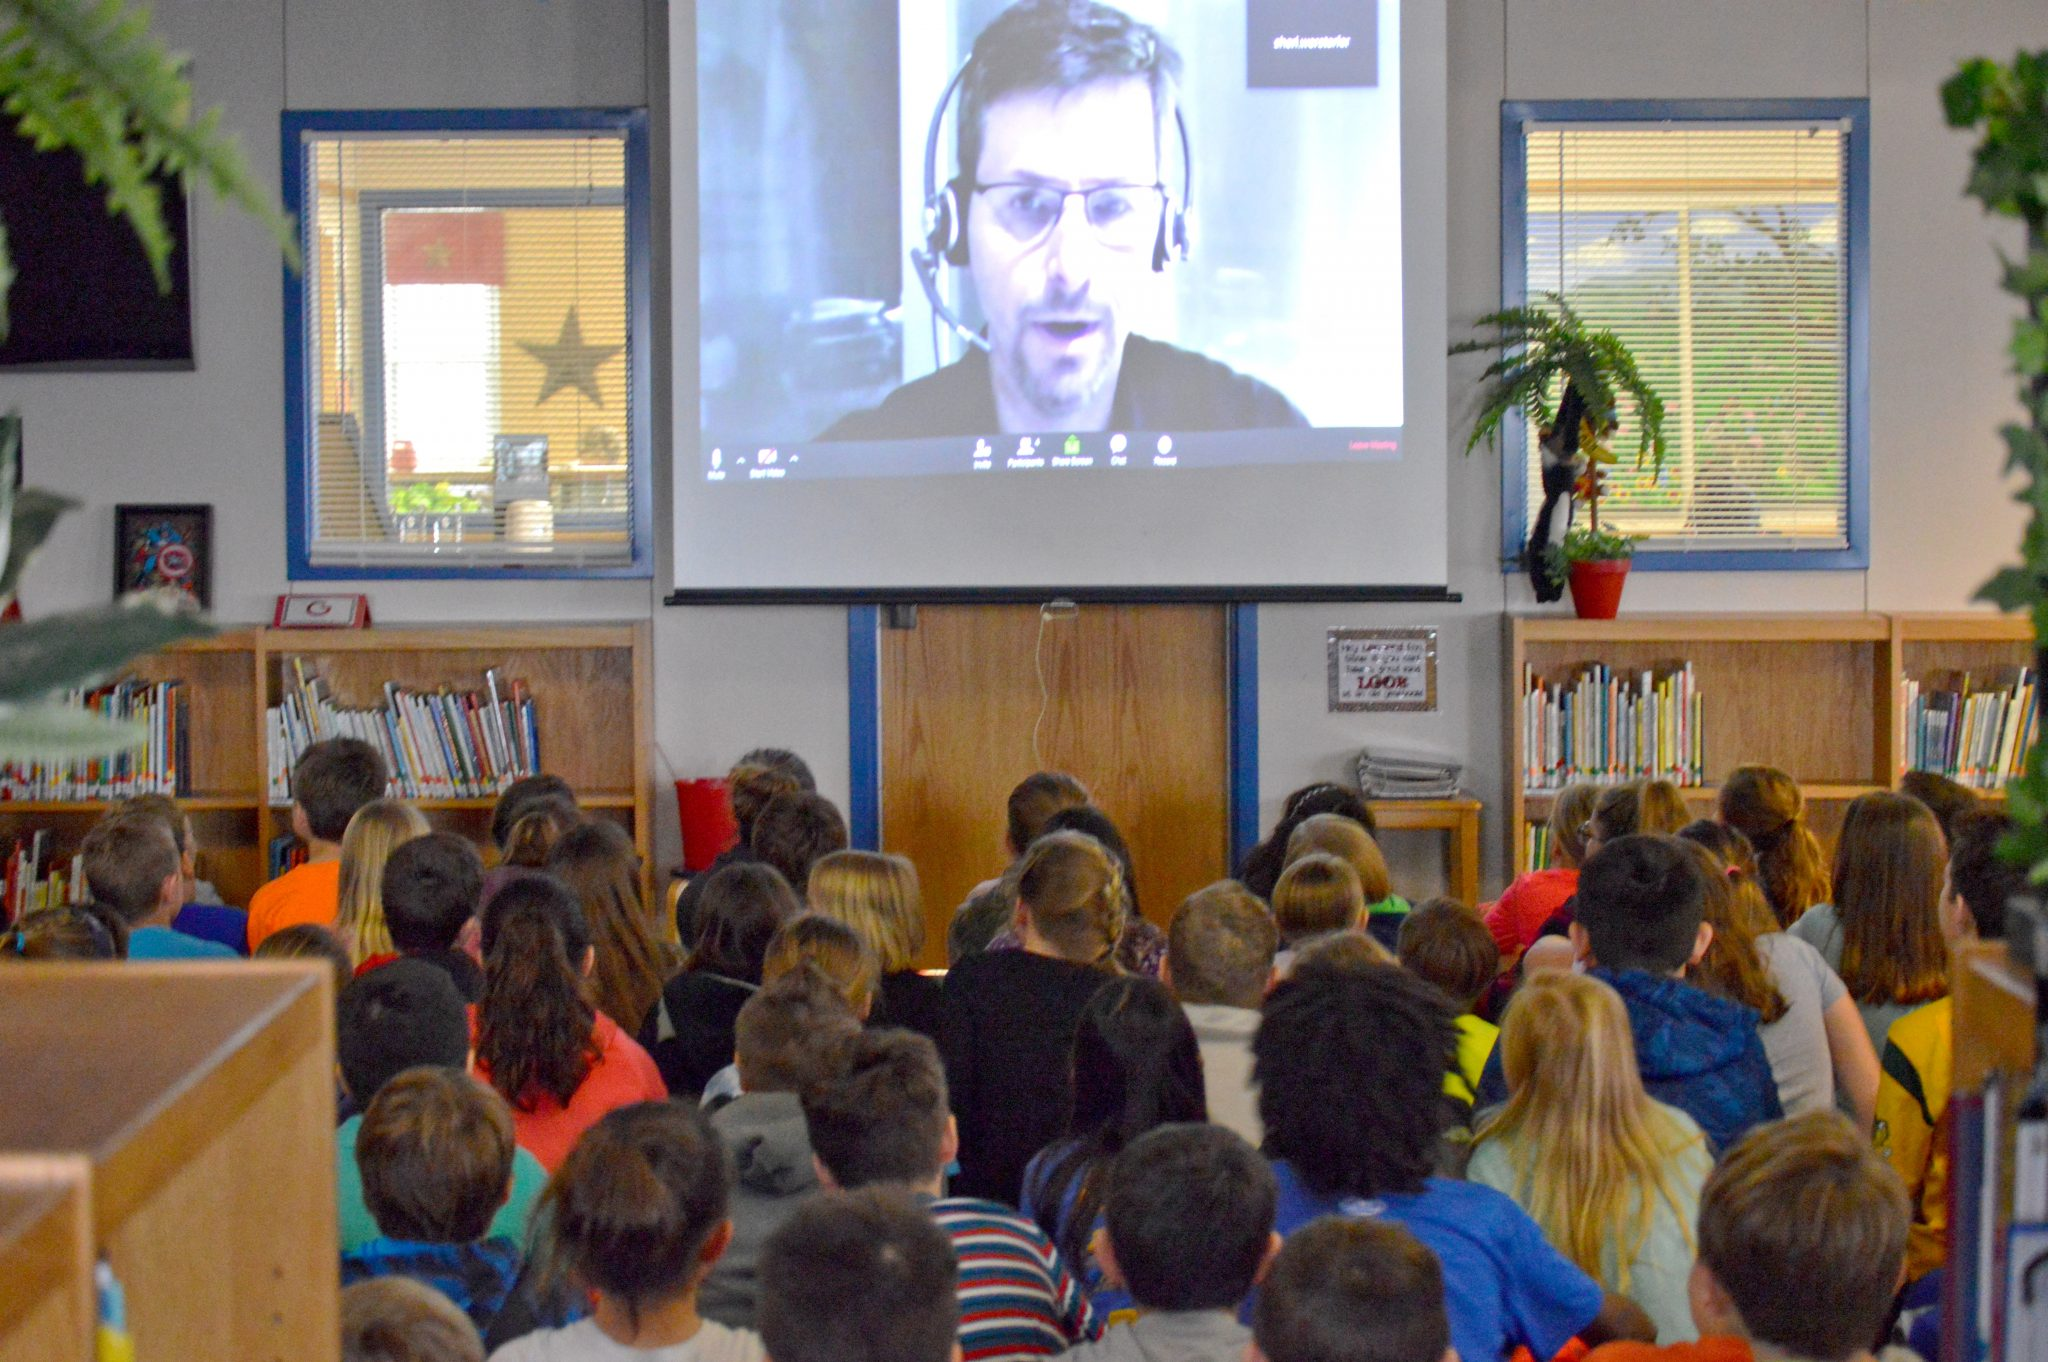 A professional addresses a class via video stream.